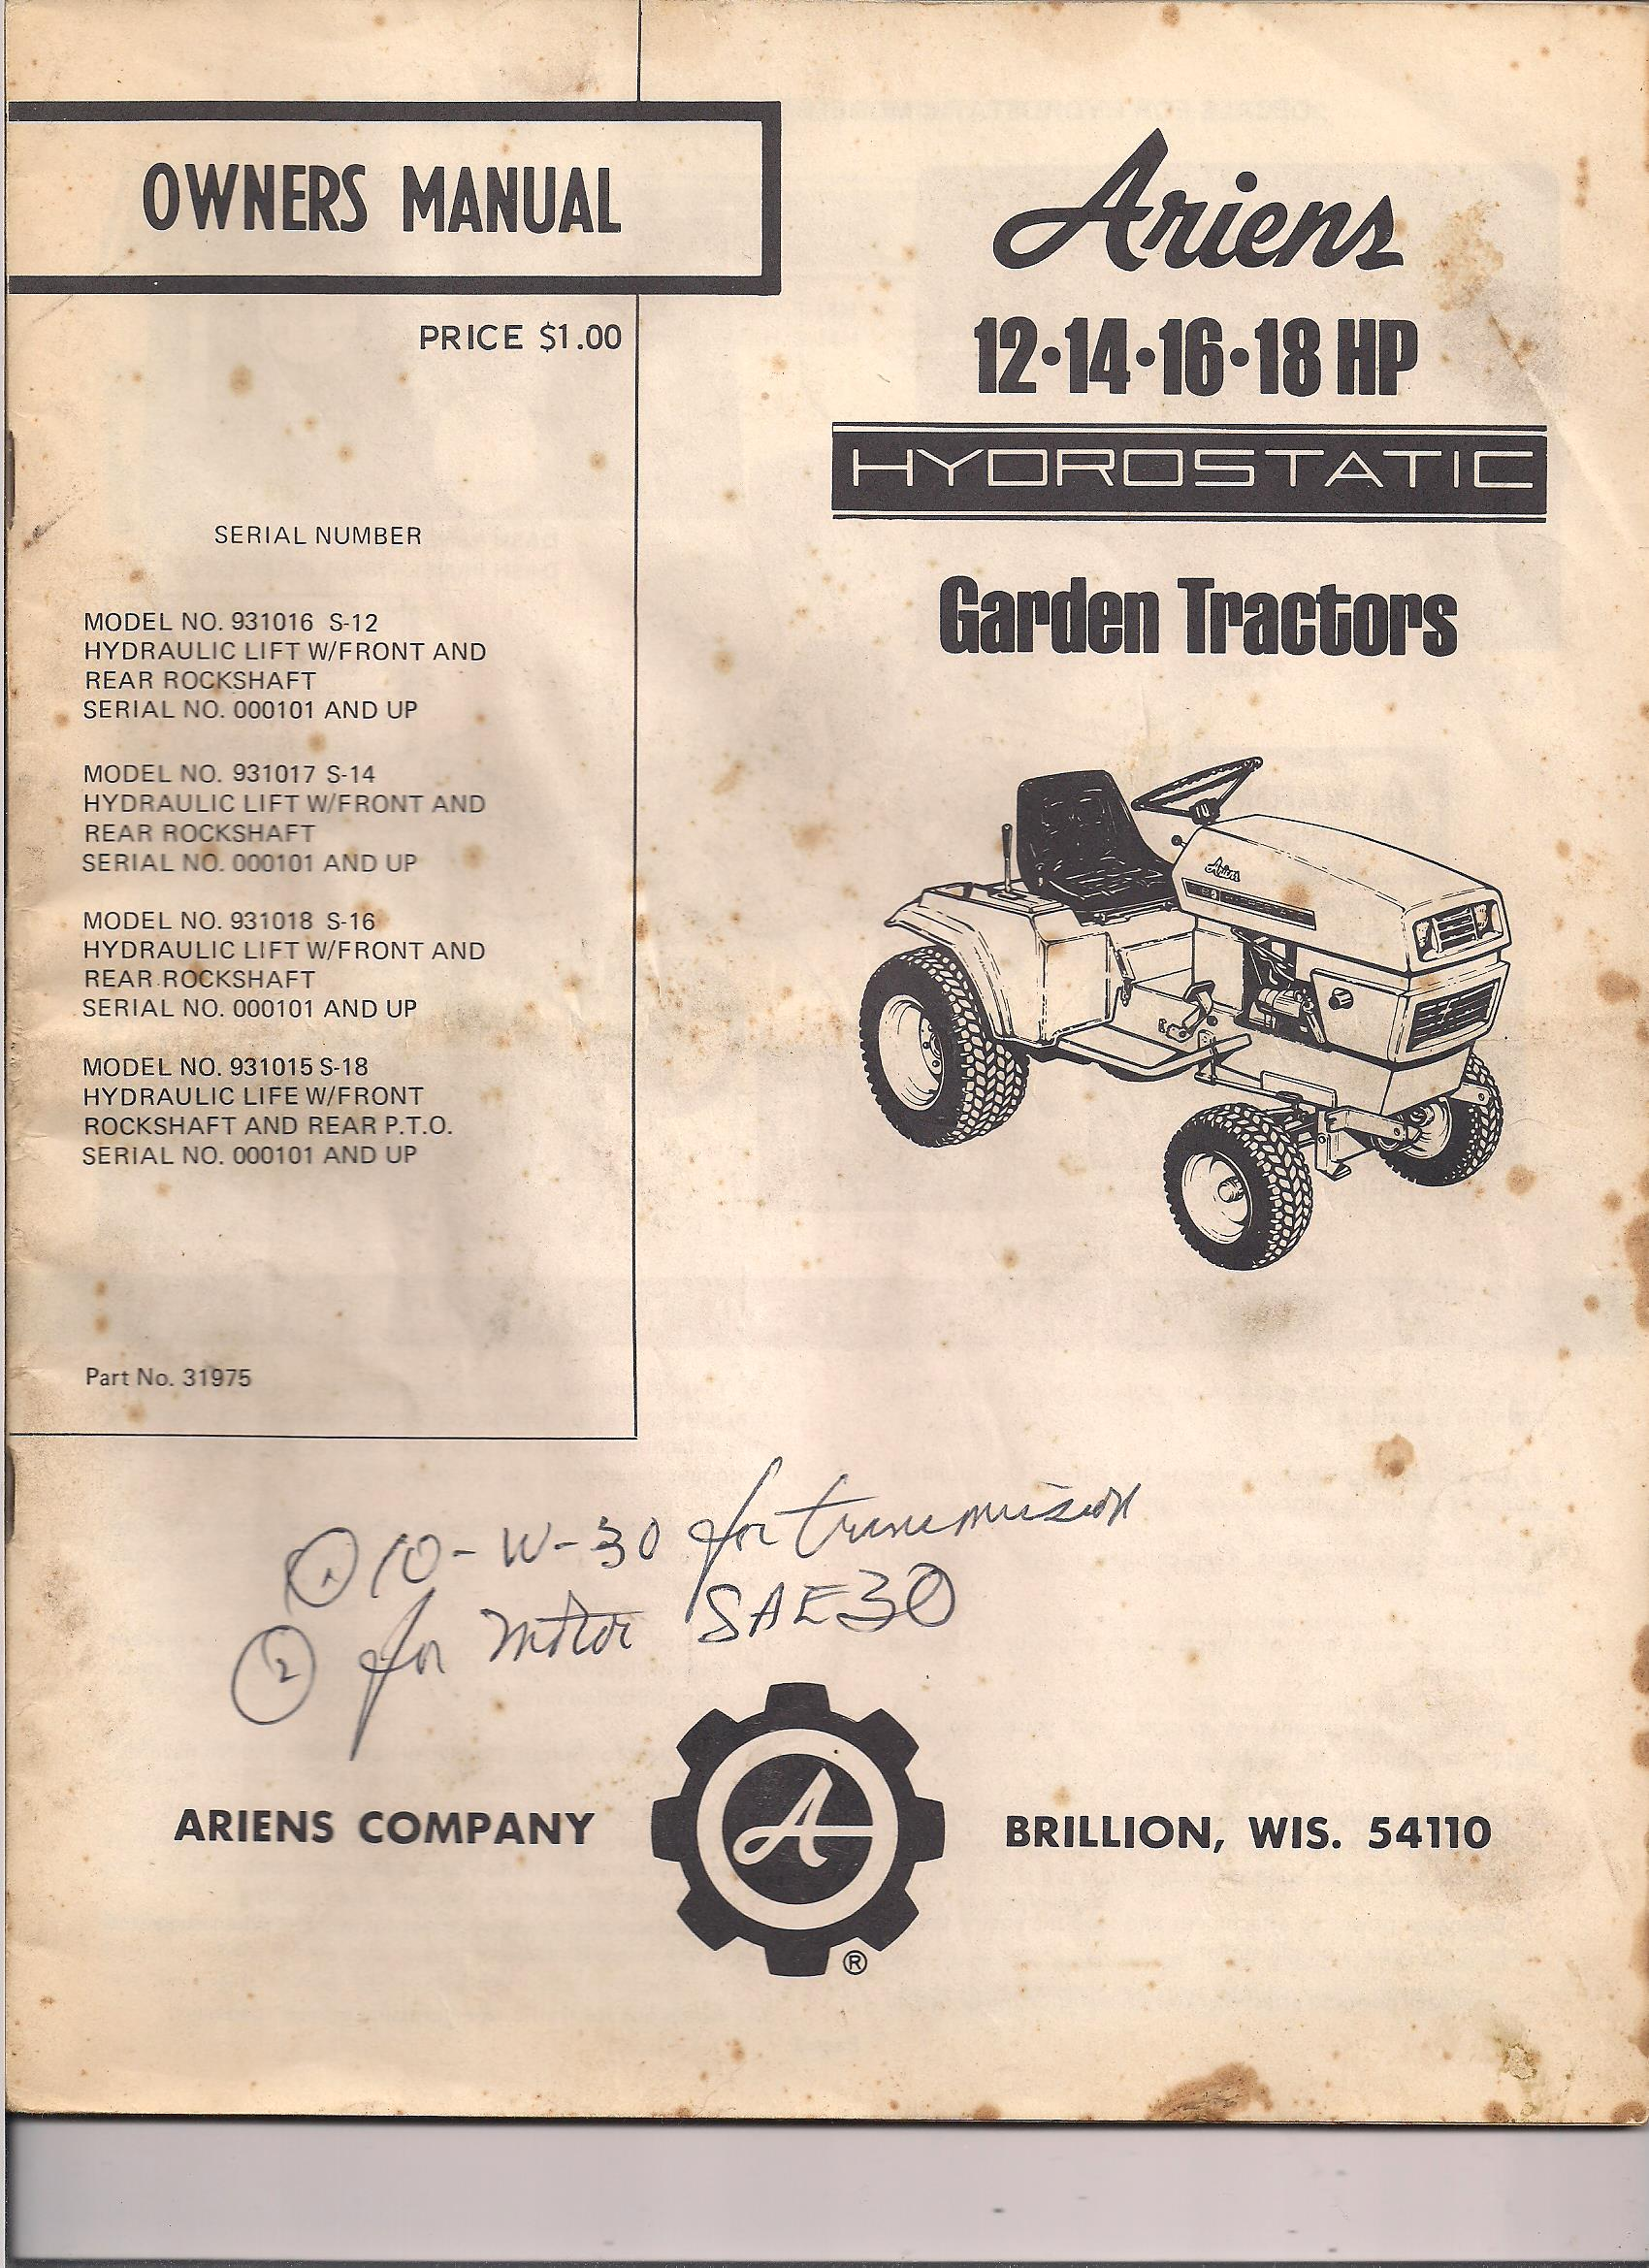 Ariens s16h--attachments available? - MyTractorForum com